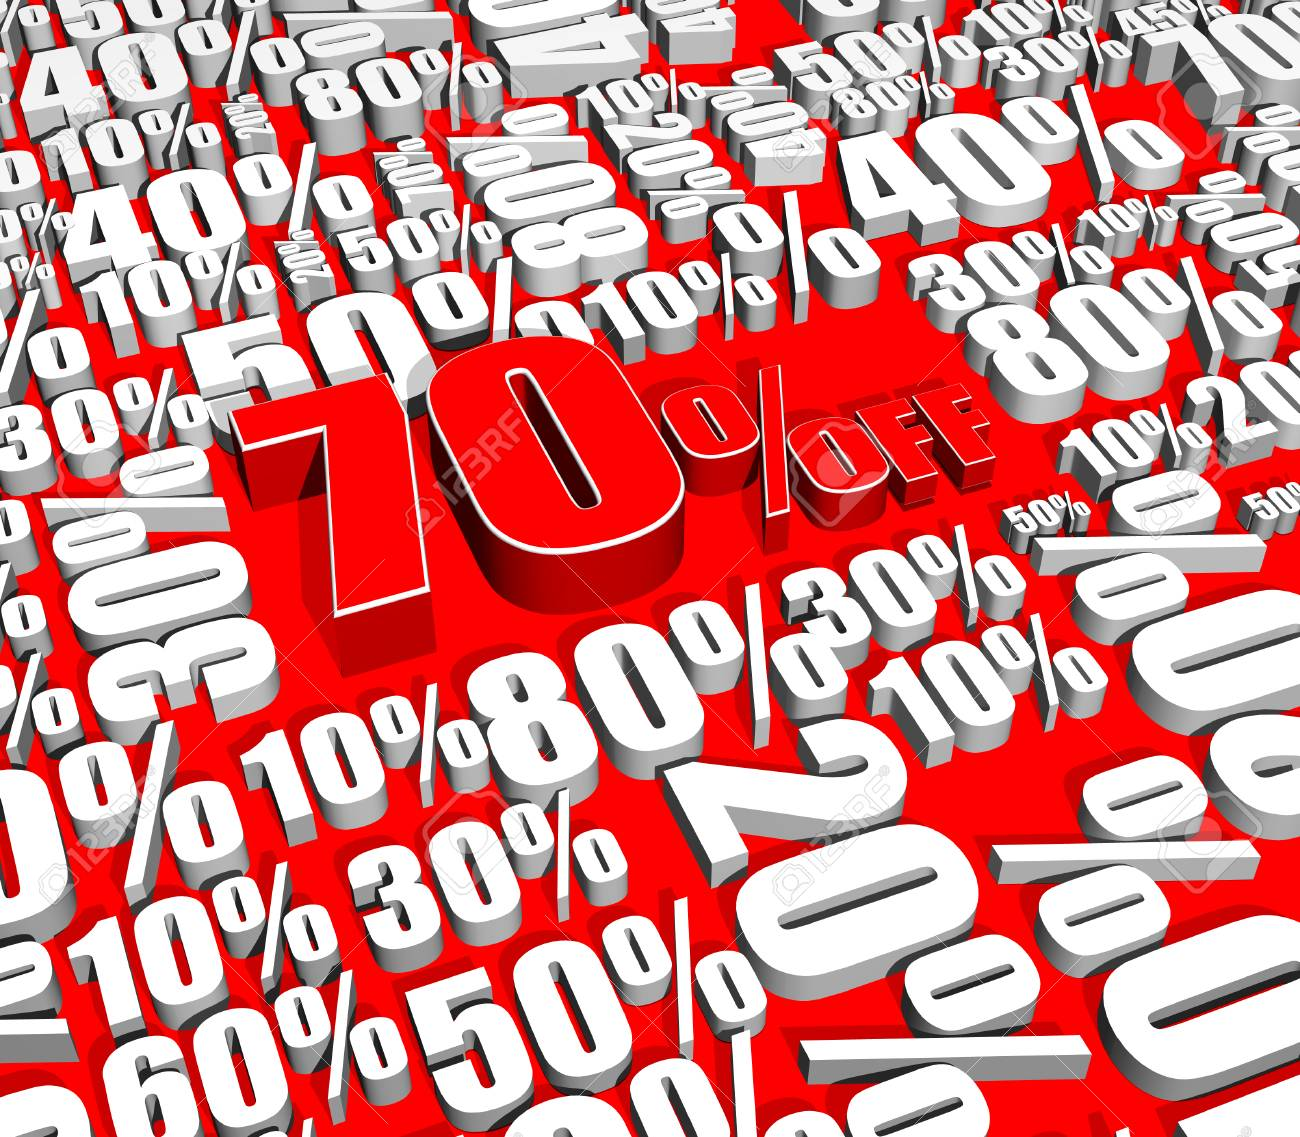 Sale 70% Off on various percentages Stock Photo - 26012023